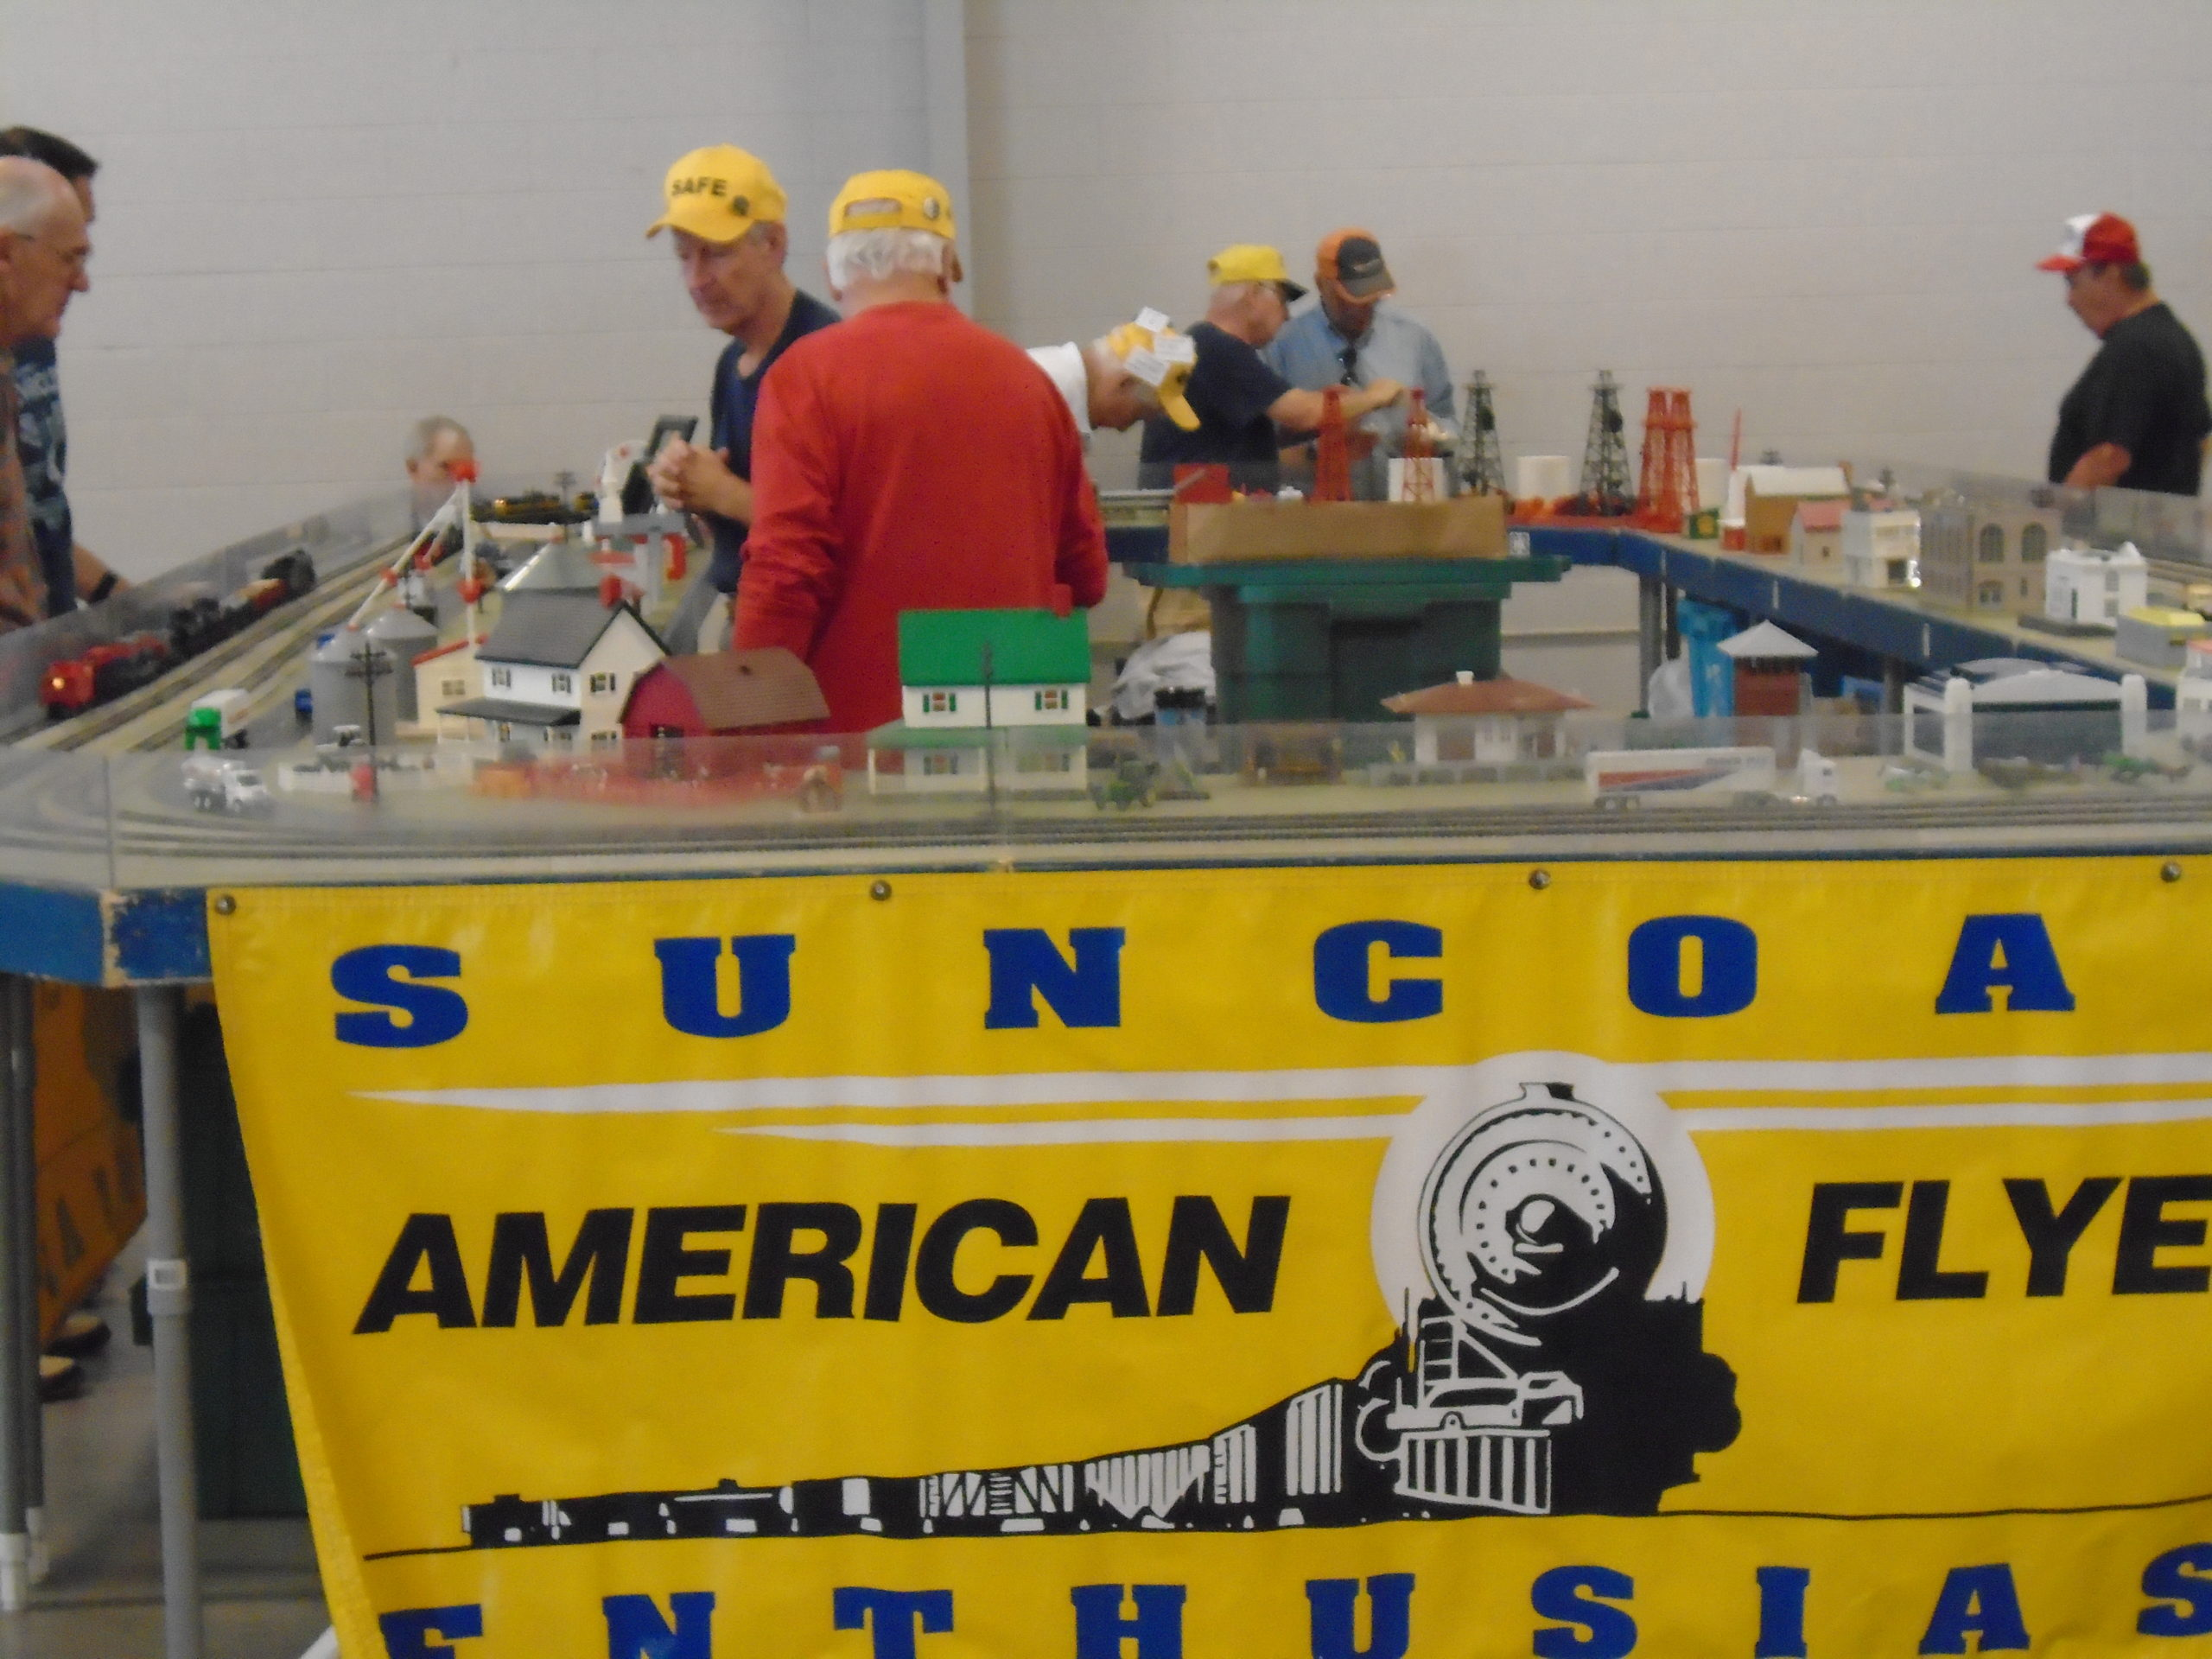 train show image of vendor with yellow banner on table via Regal Railways